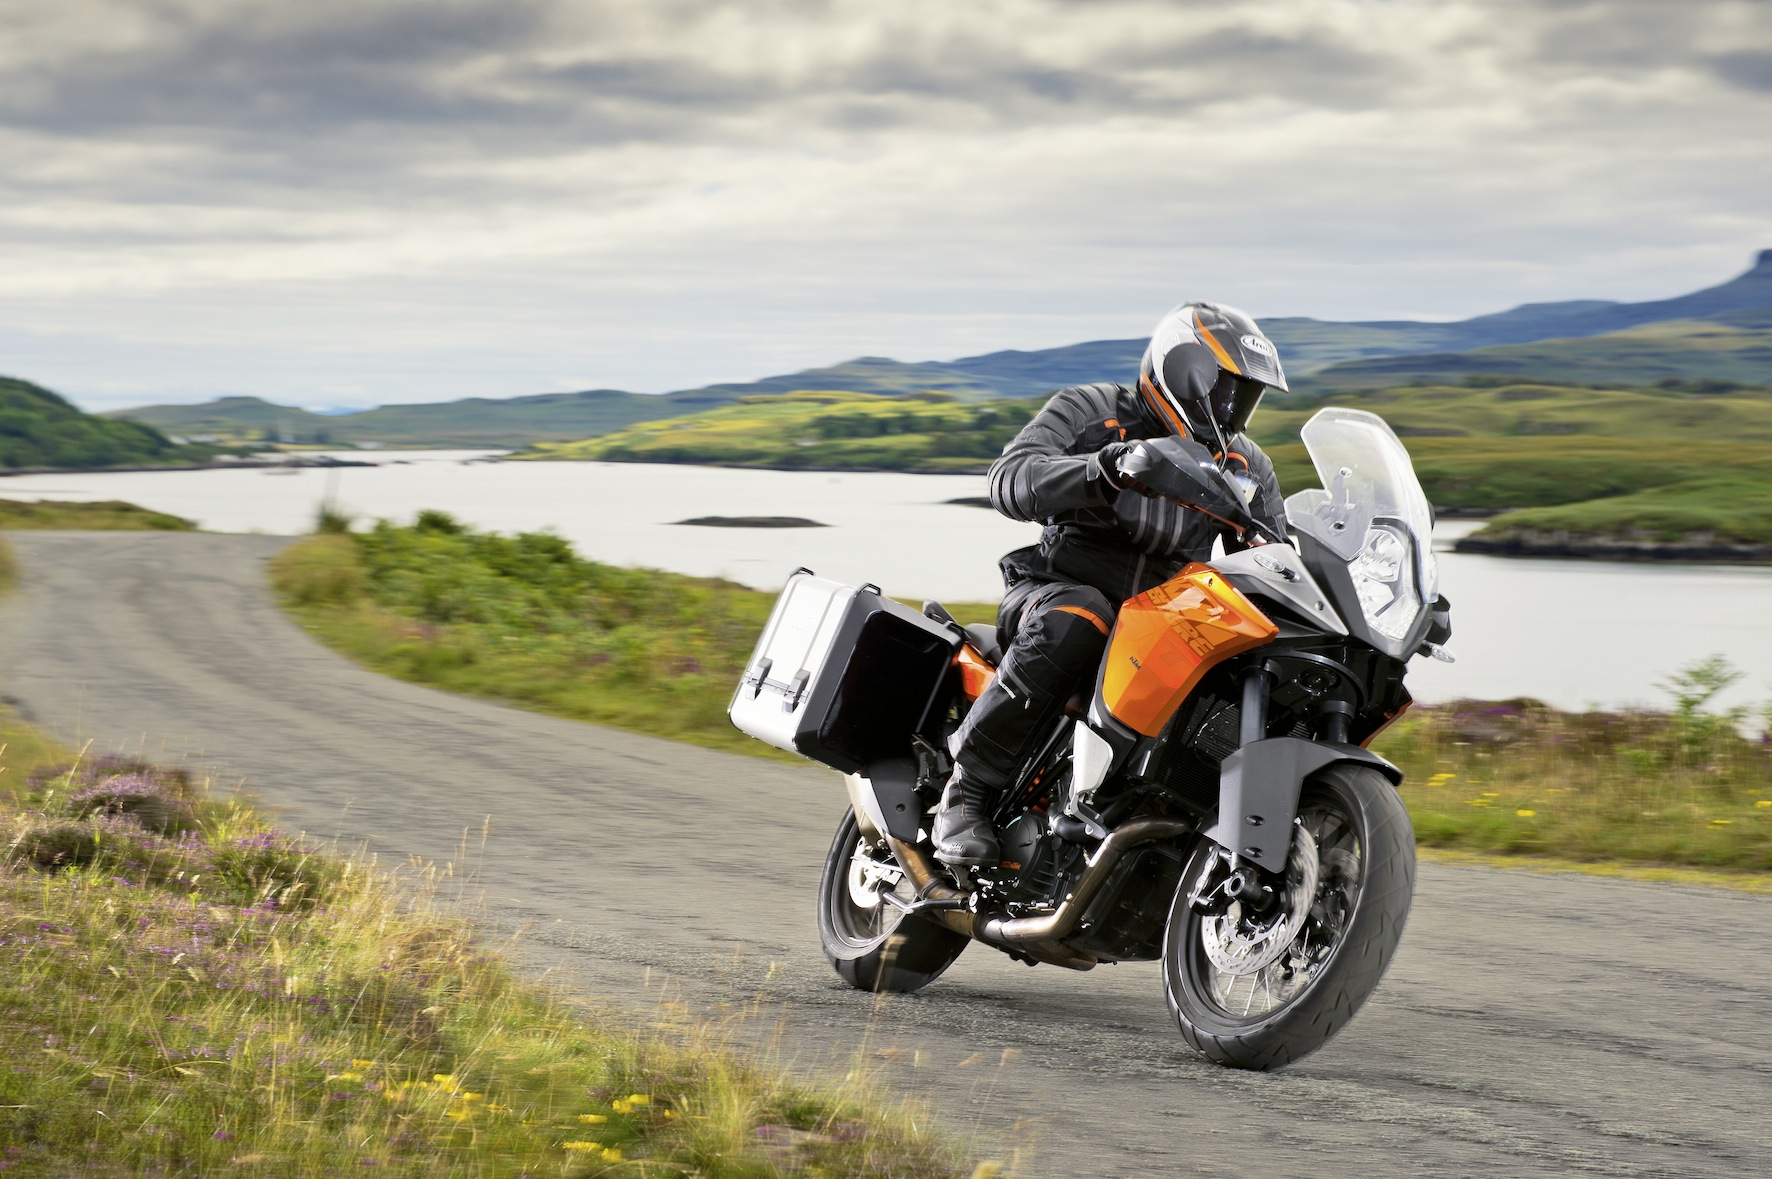 Test ride an KTM 1190 Adventure